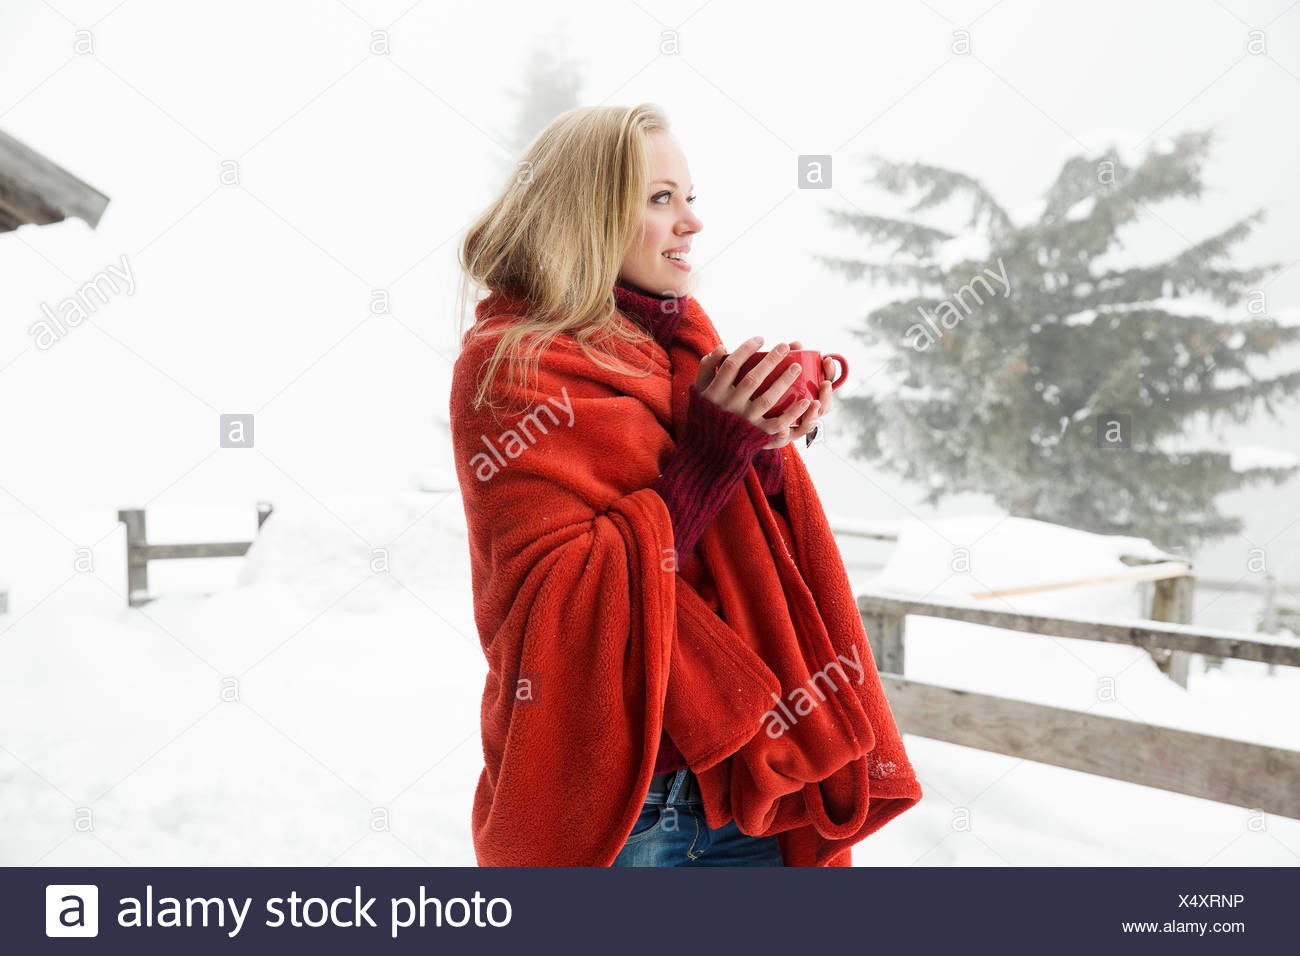 Young woman in snowy mist wrapped in red blanket drinking coffee - Stock Image